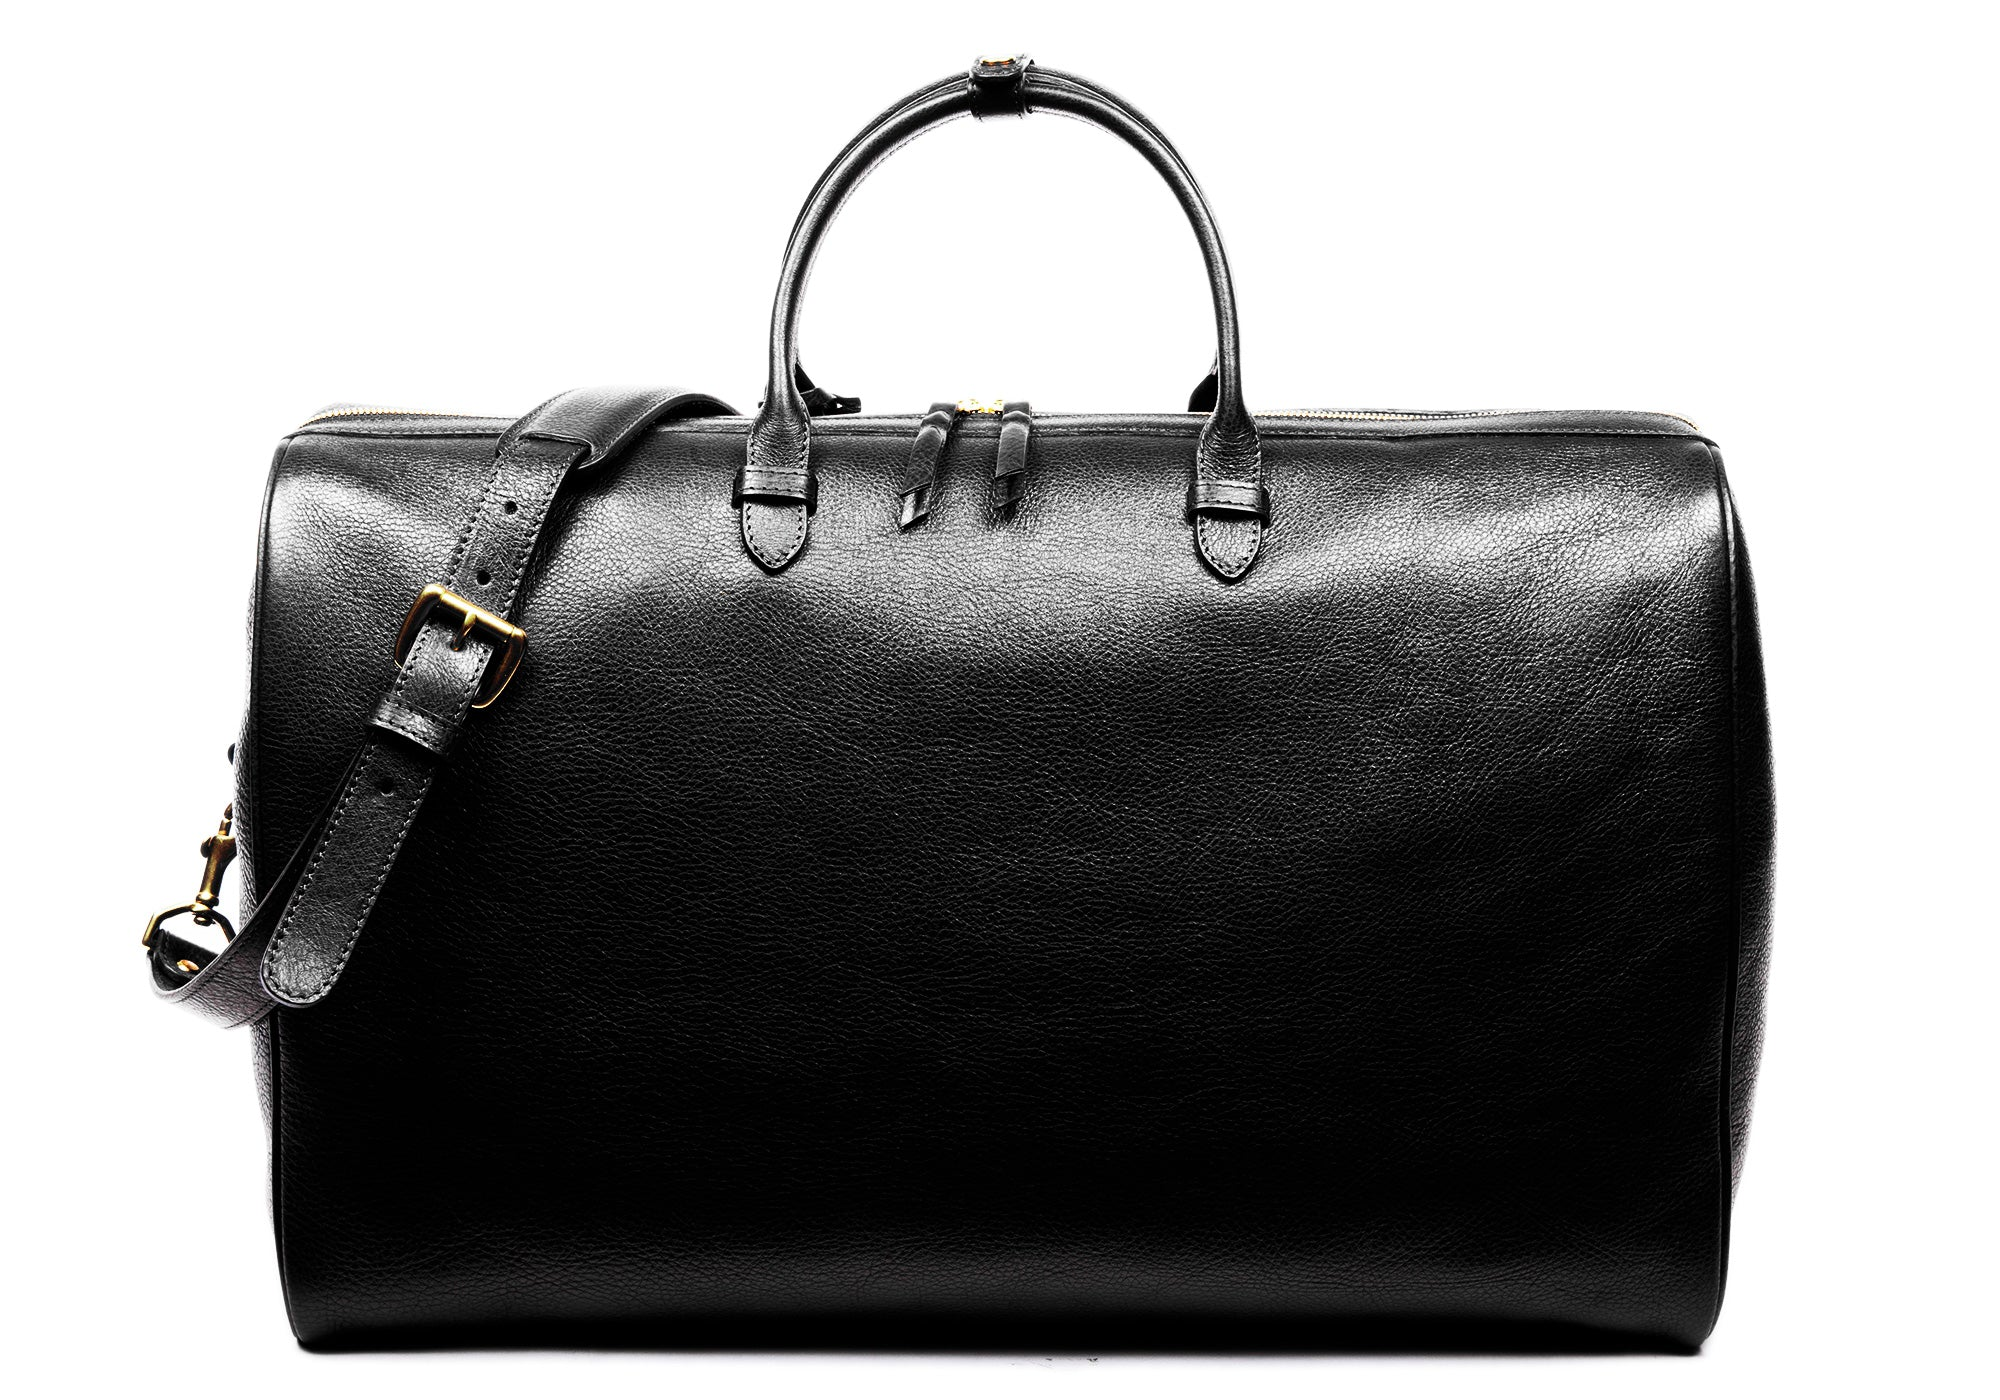 No. 12 Weekender Bag Black